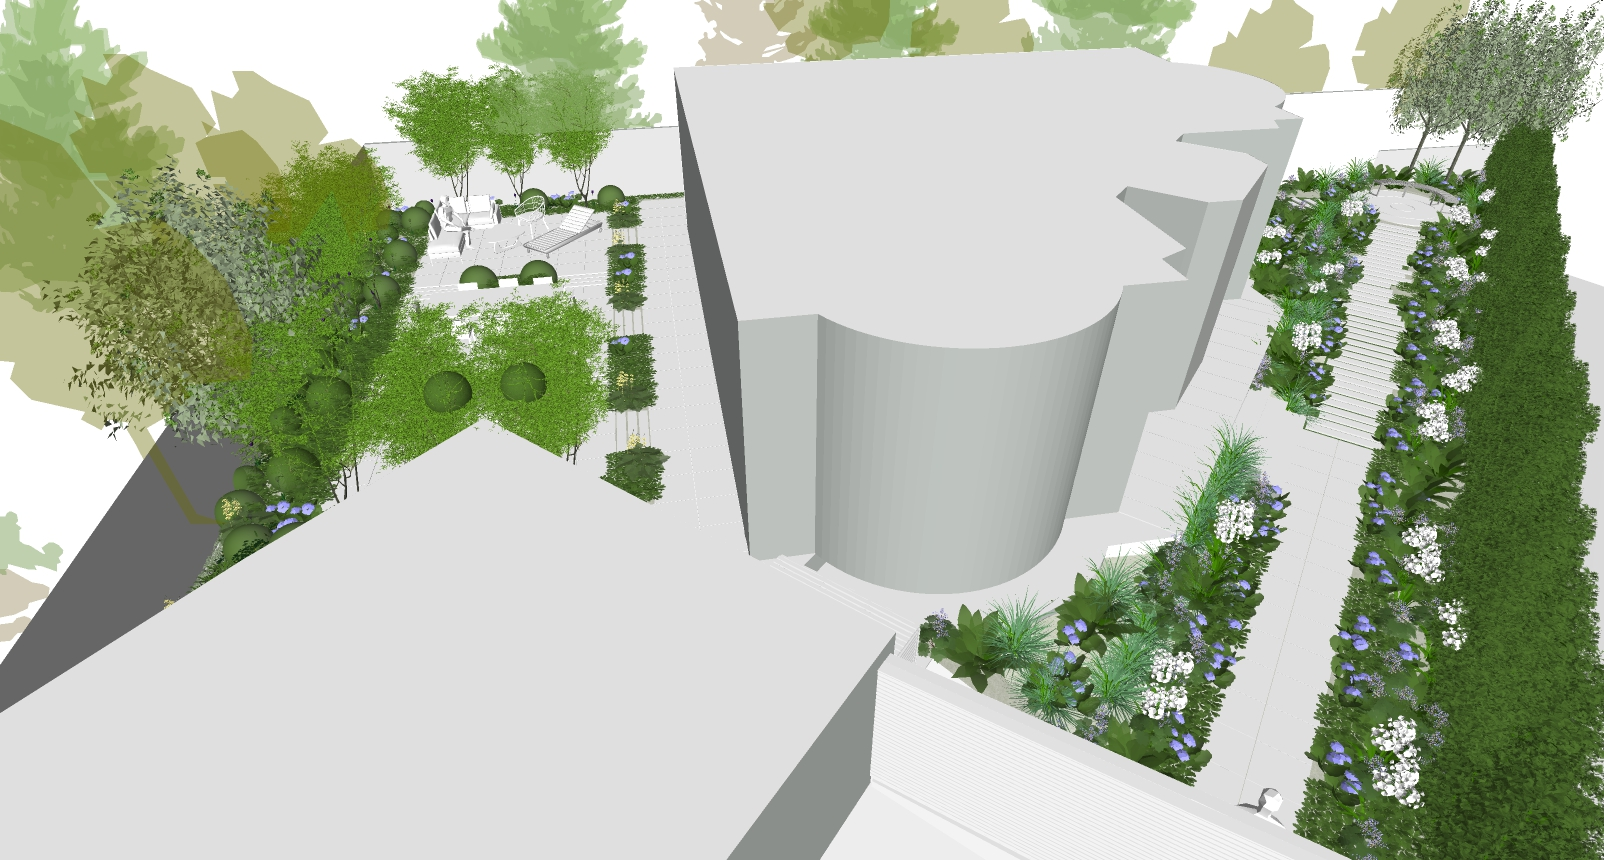 M1639 - Design and installation of landscape surrounding a private residence in north London.  Design: Modular